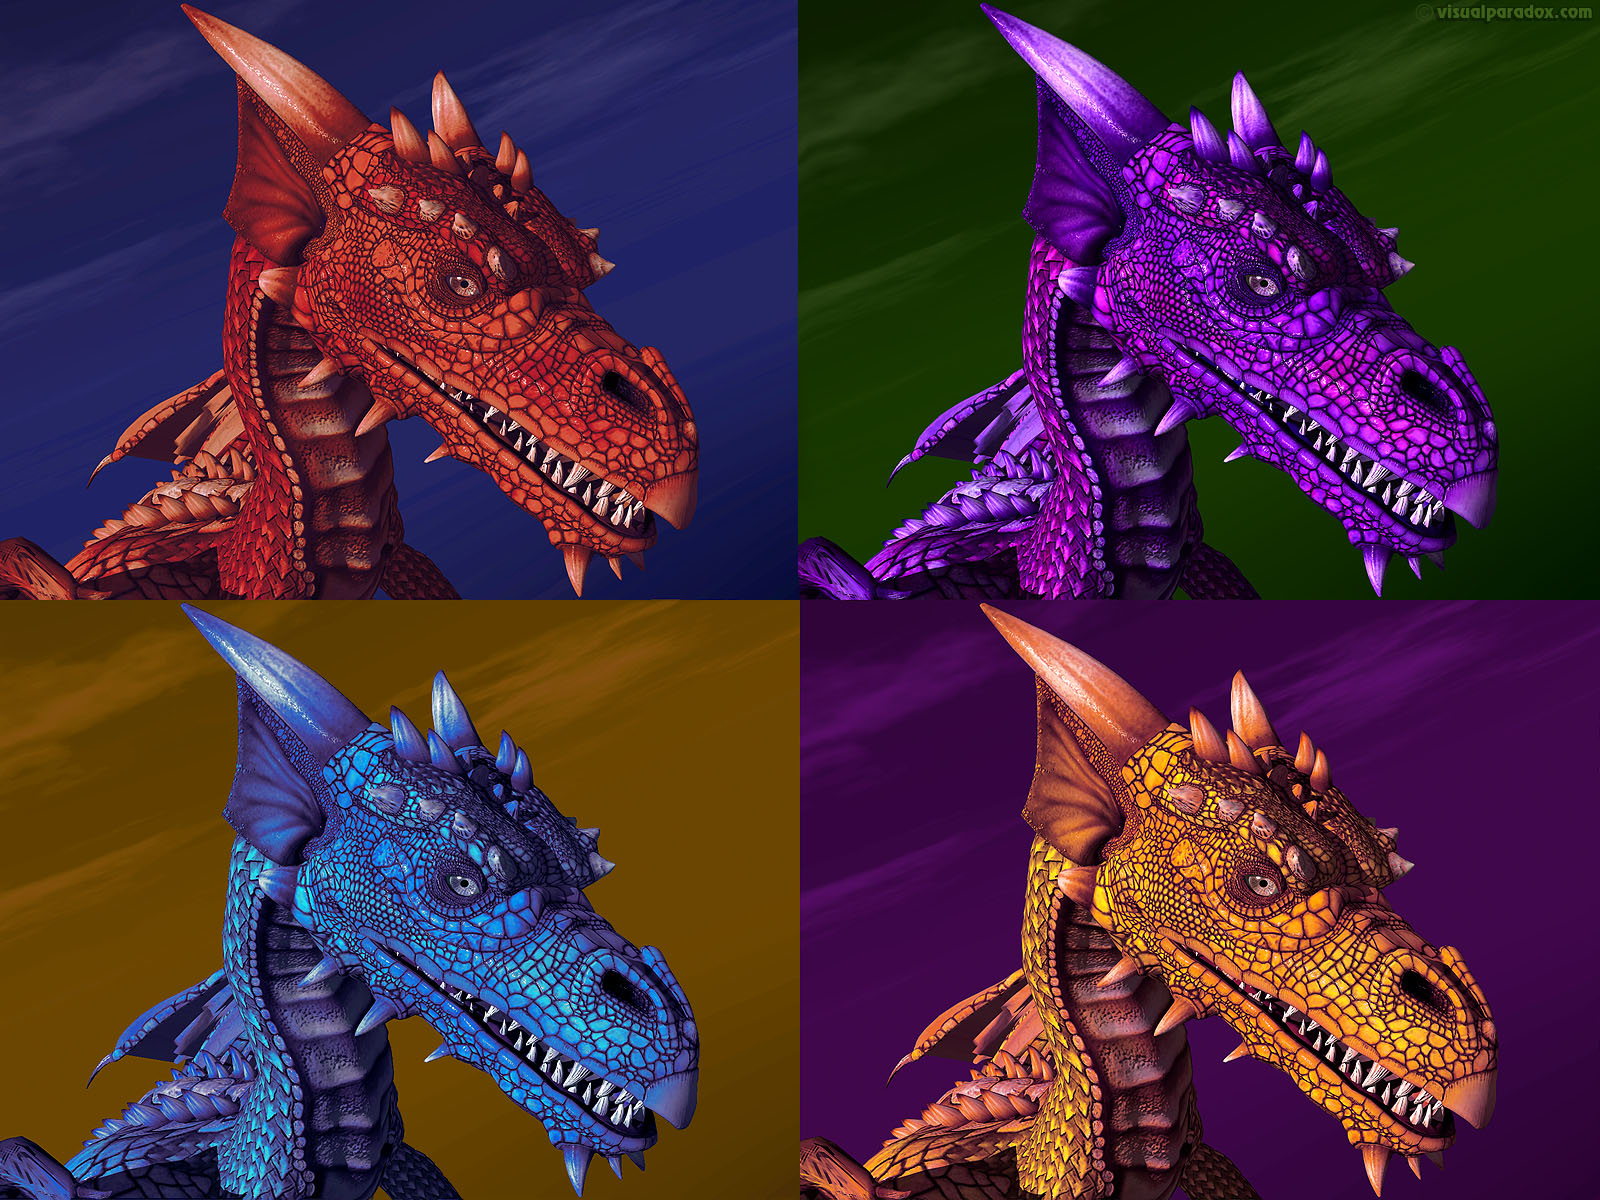 dragon, wyrm, mythical, monster, soar, closeup, detail, violet, purple, blue, red, yellow, fire, ice, warhol, dragons, 3d, wallpaper